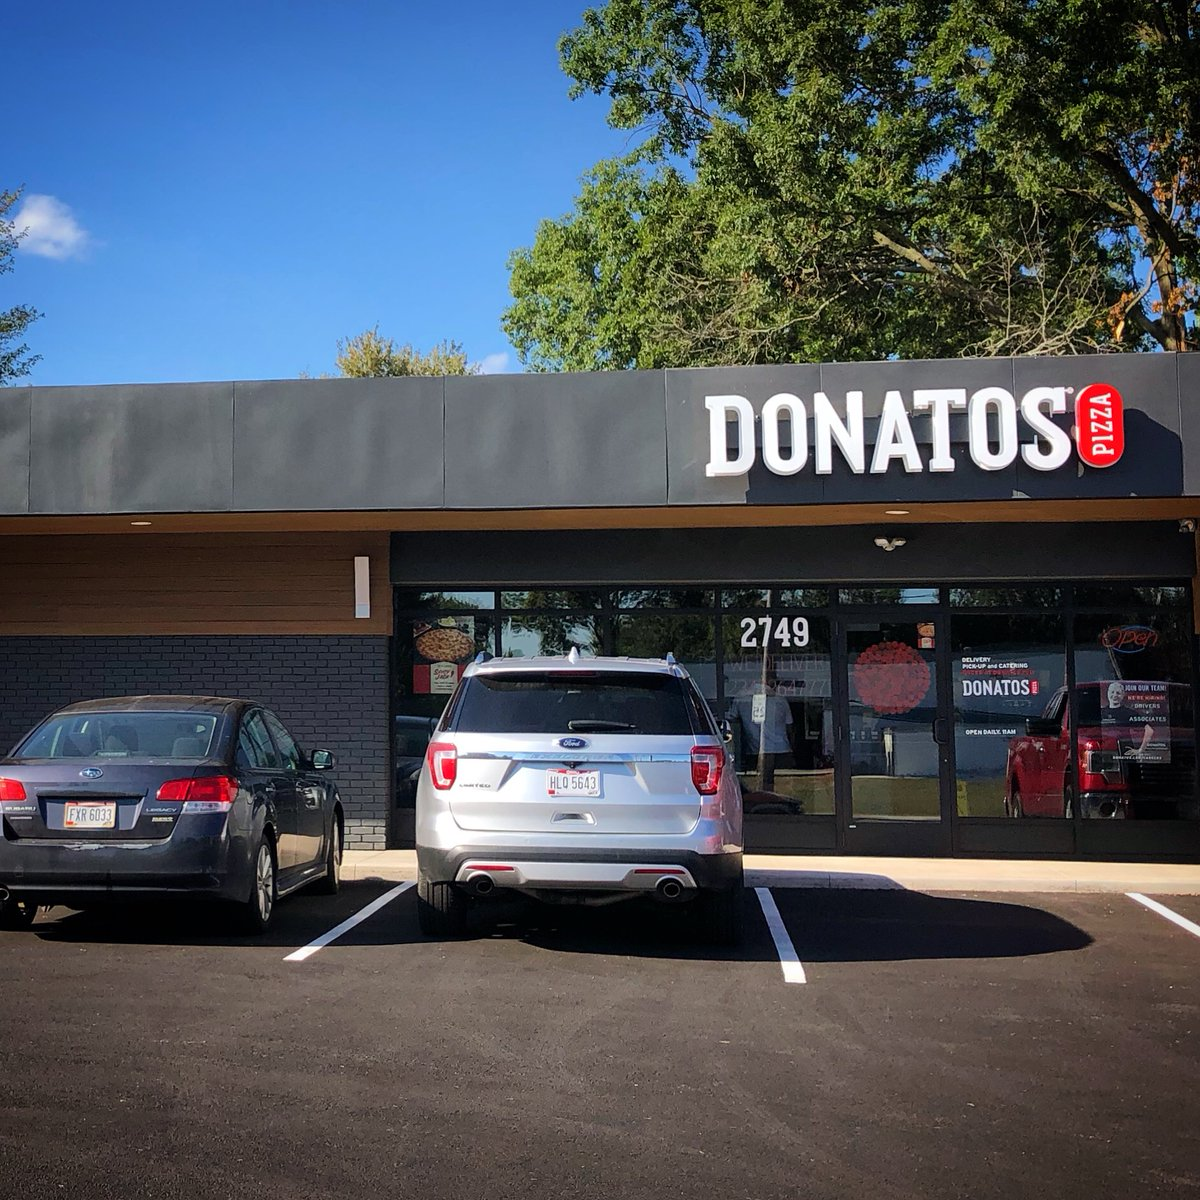 Red Robin/Donatos test expanding to Colorado restaurants, CEO Paul Murphy says on Q4 call. Kitchen upgrades = $145K. Here's how the partnership came together  #pizza #burgers #restaurant #food #foodnews